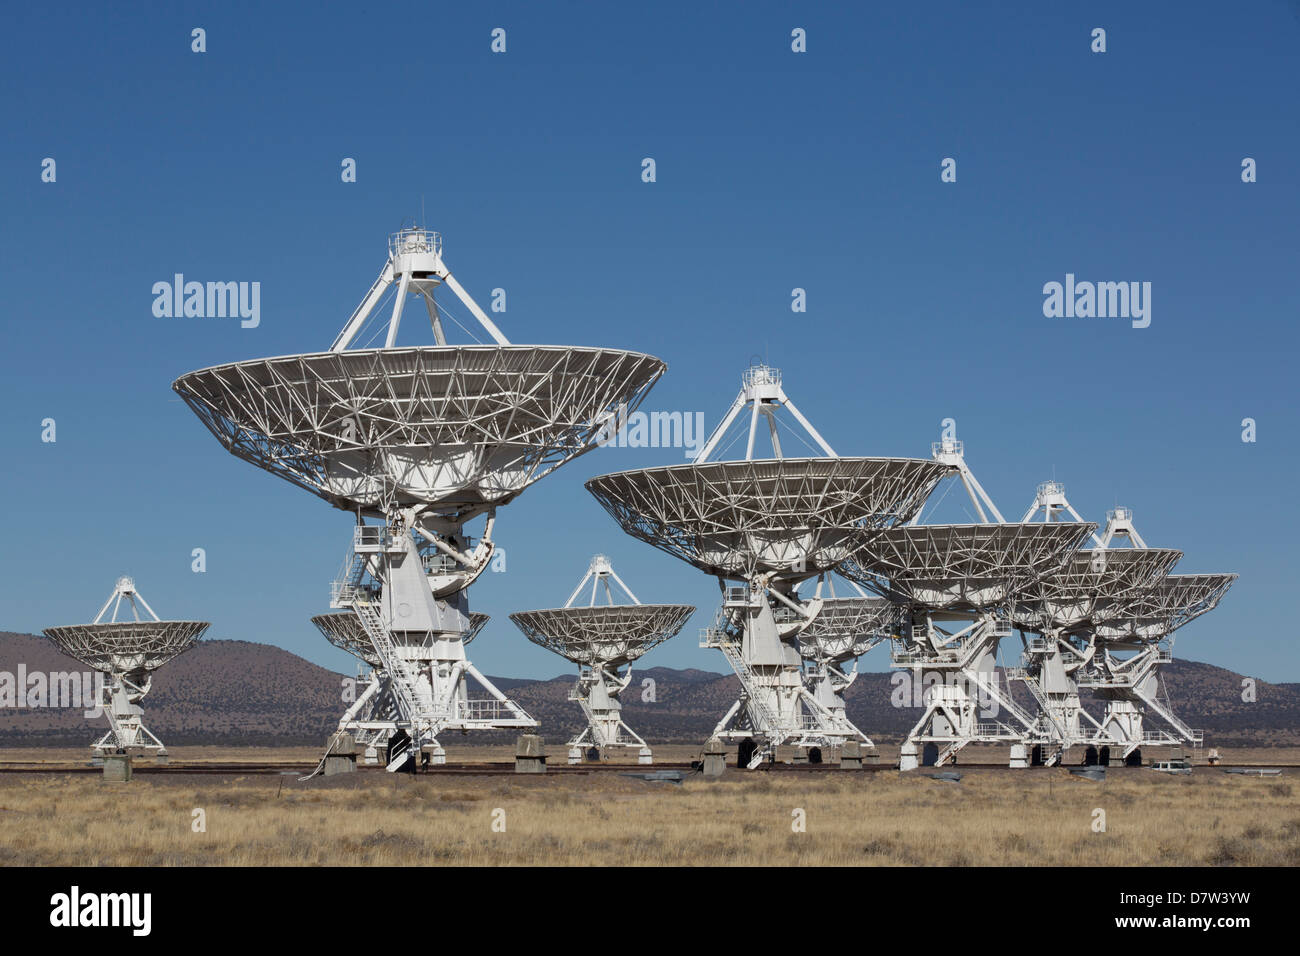 Das Very Large Array, New Mexico, USA Stockbild